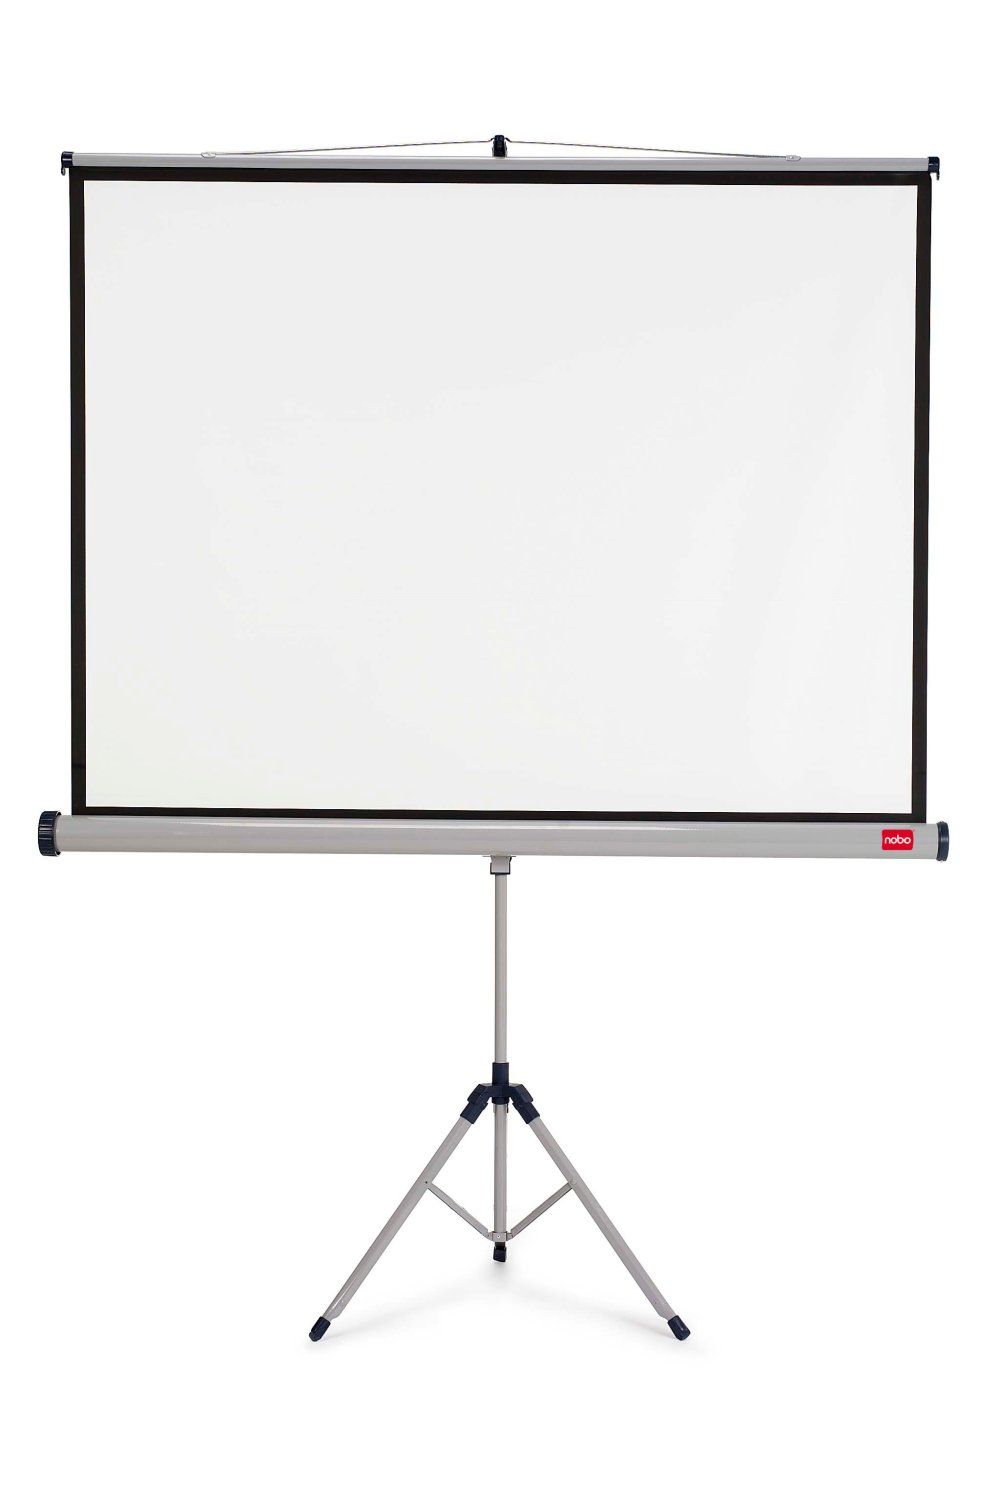 Presentation Equipment